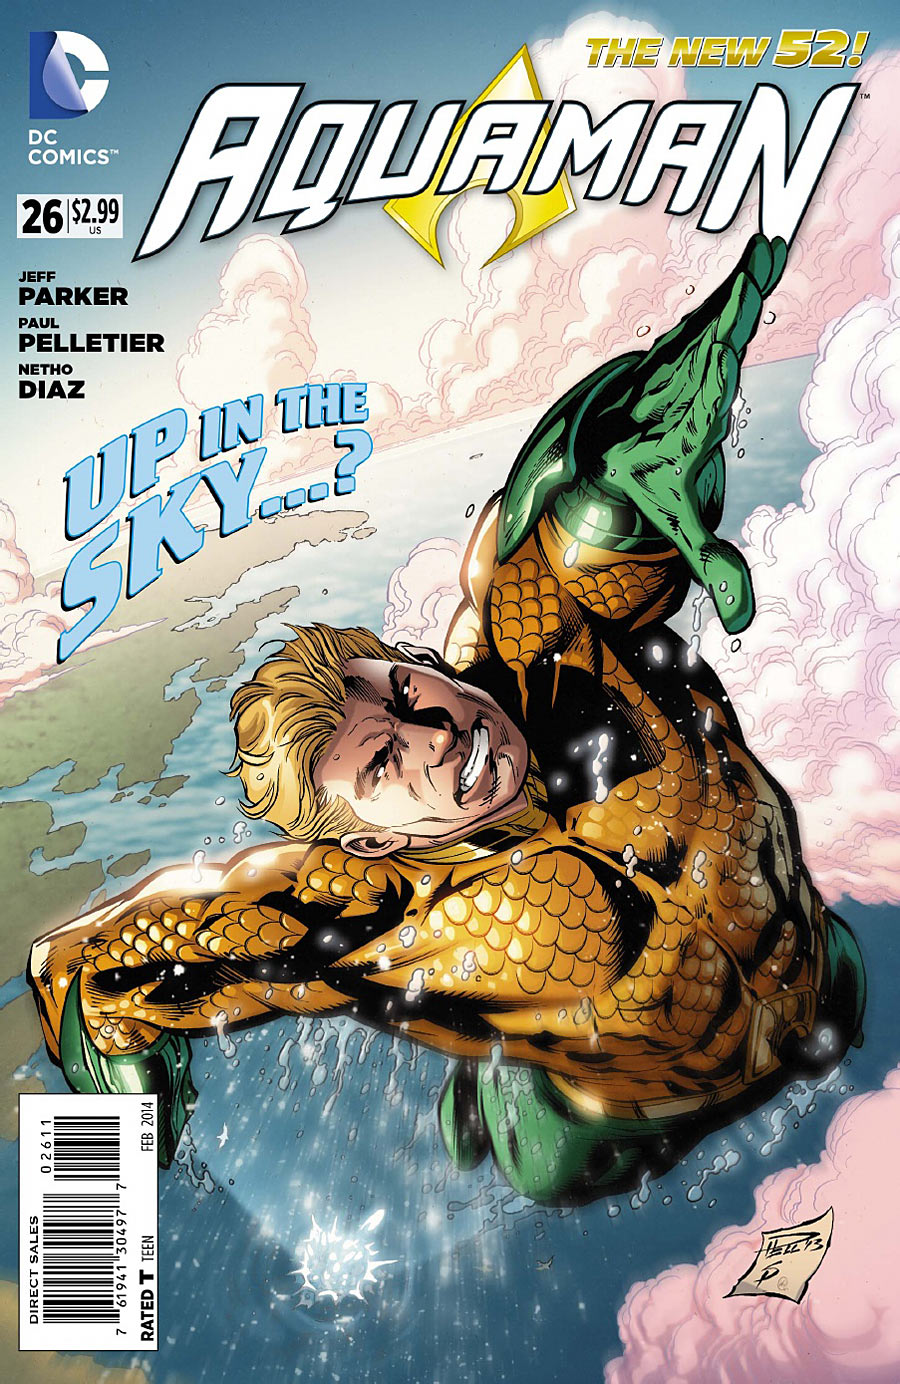 Up in the sky! It's a bird! It's a plane! No, it's a flying fish-man! (Sorry, Aquaman fans)